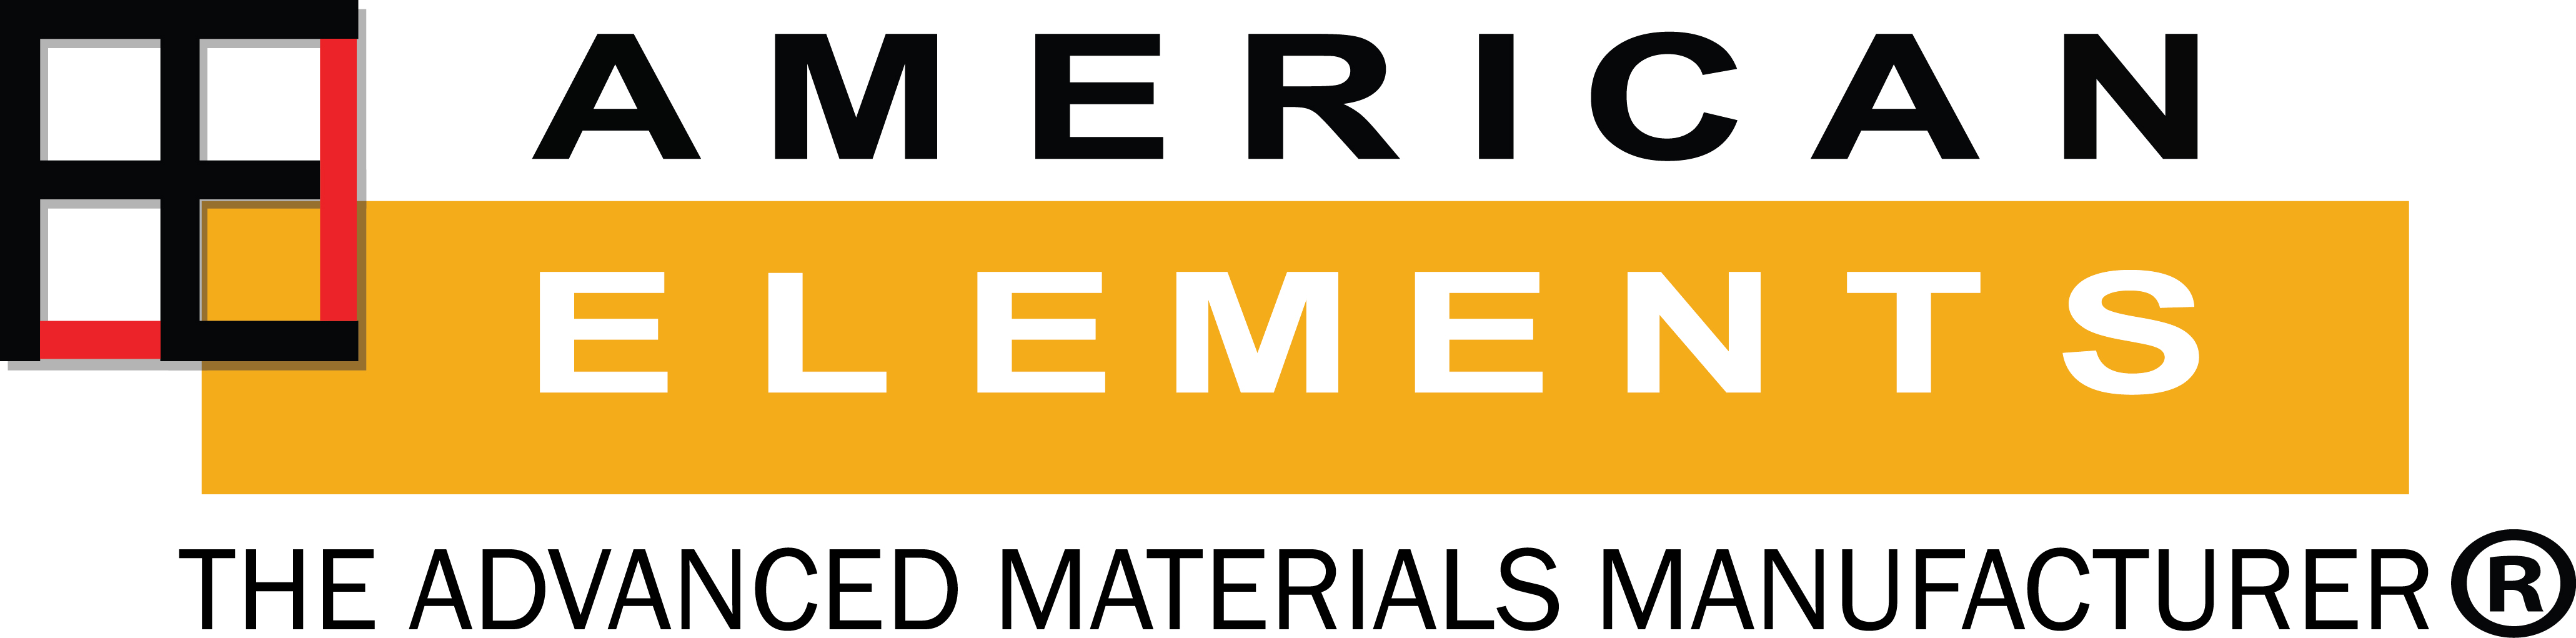 American Elements: global manufacturer of metals, compounds, alloys, ceramics for advanced additive manufacturing materials for aerospace, research & defense applications